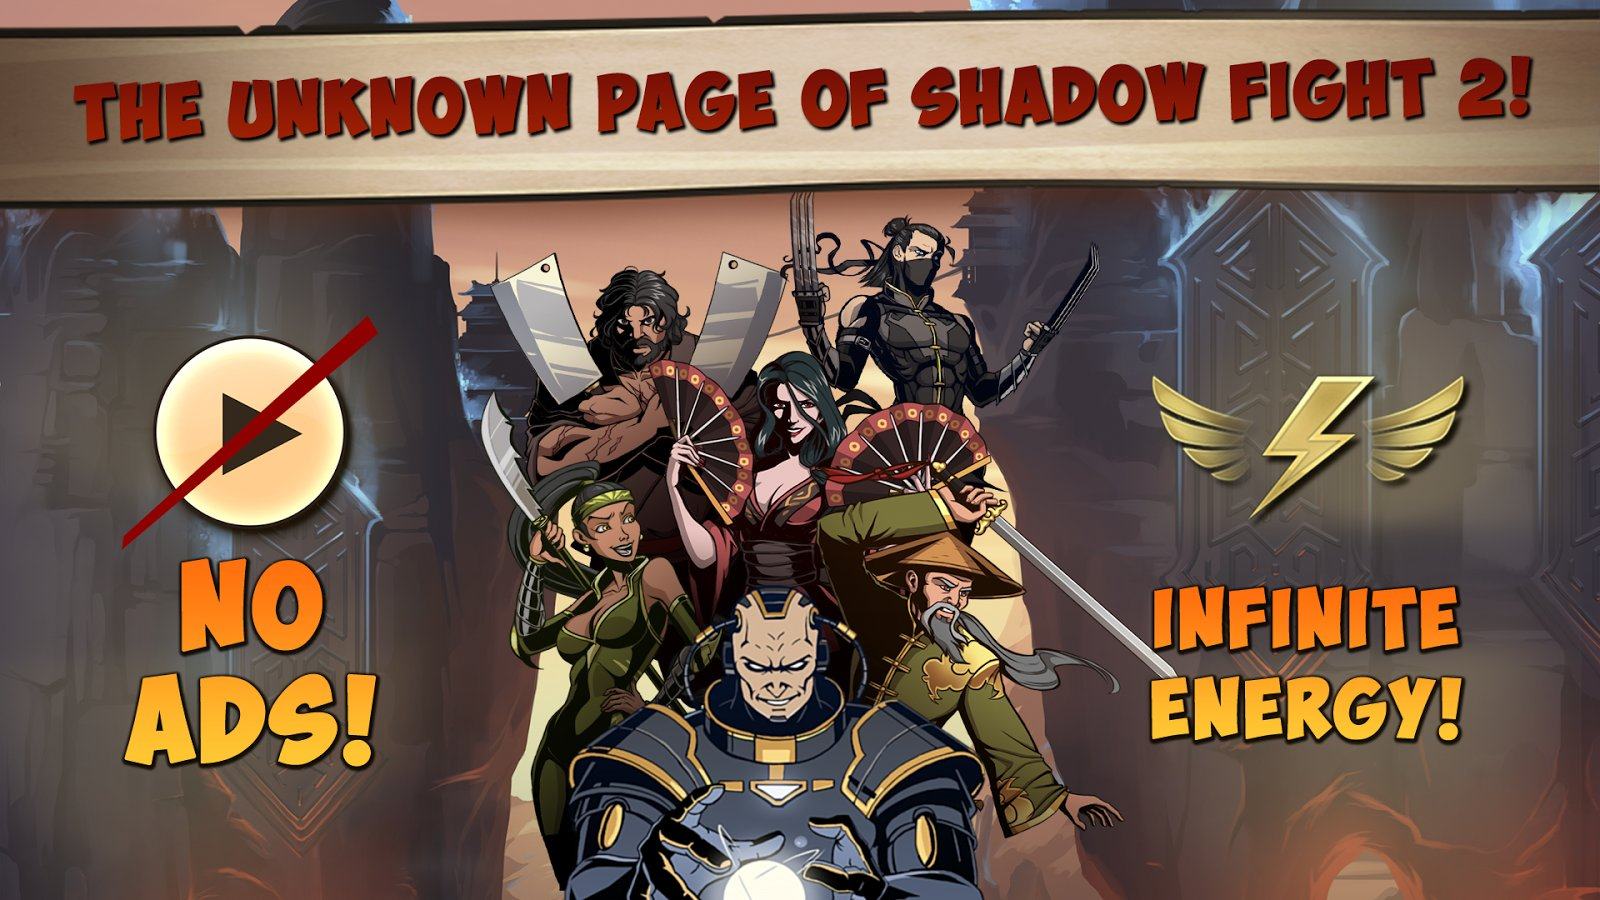 новая версия игры shadow fight 2 rus 1.9.8 мод